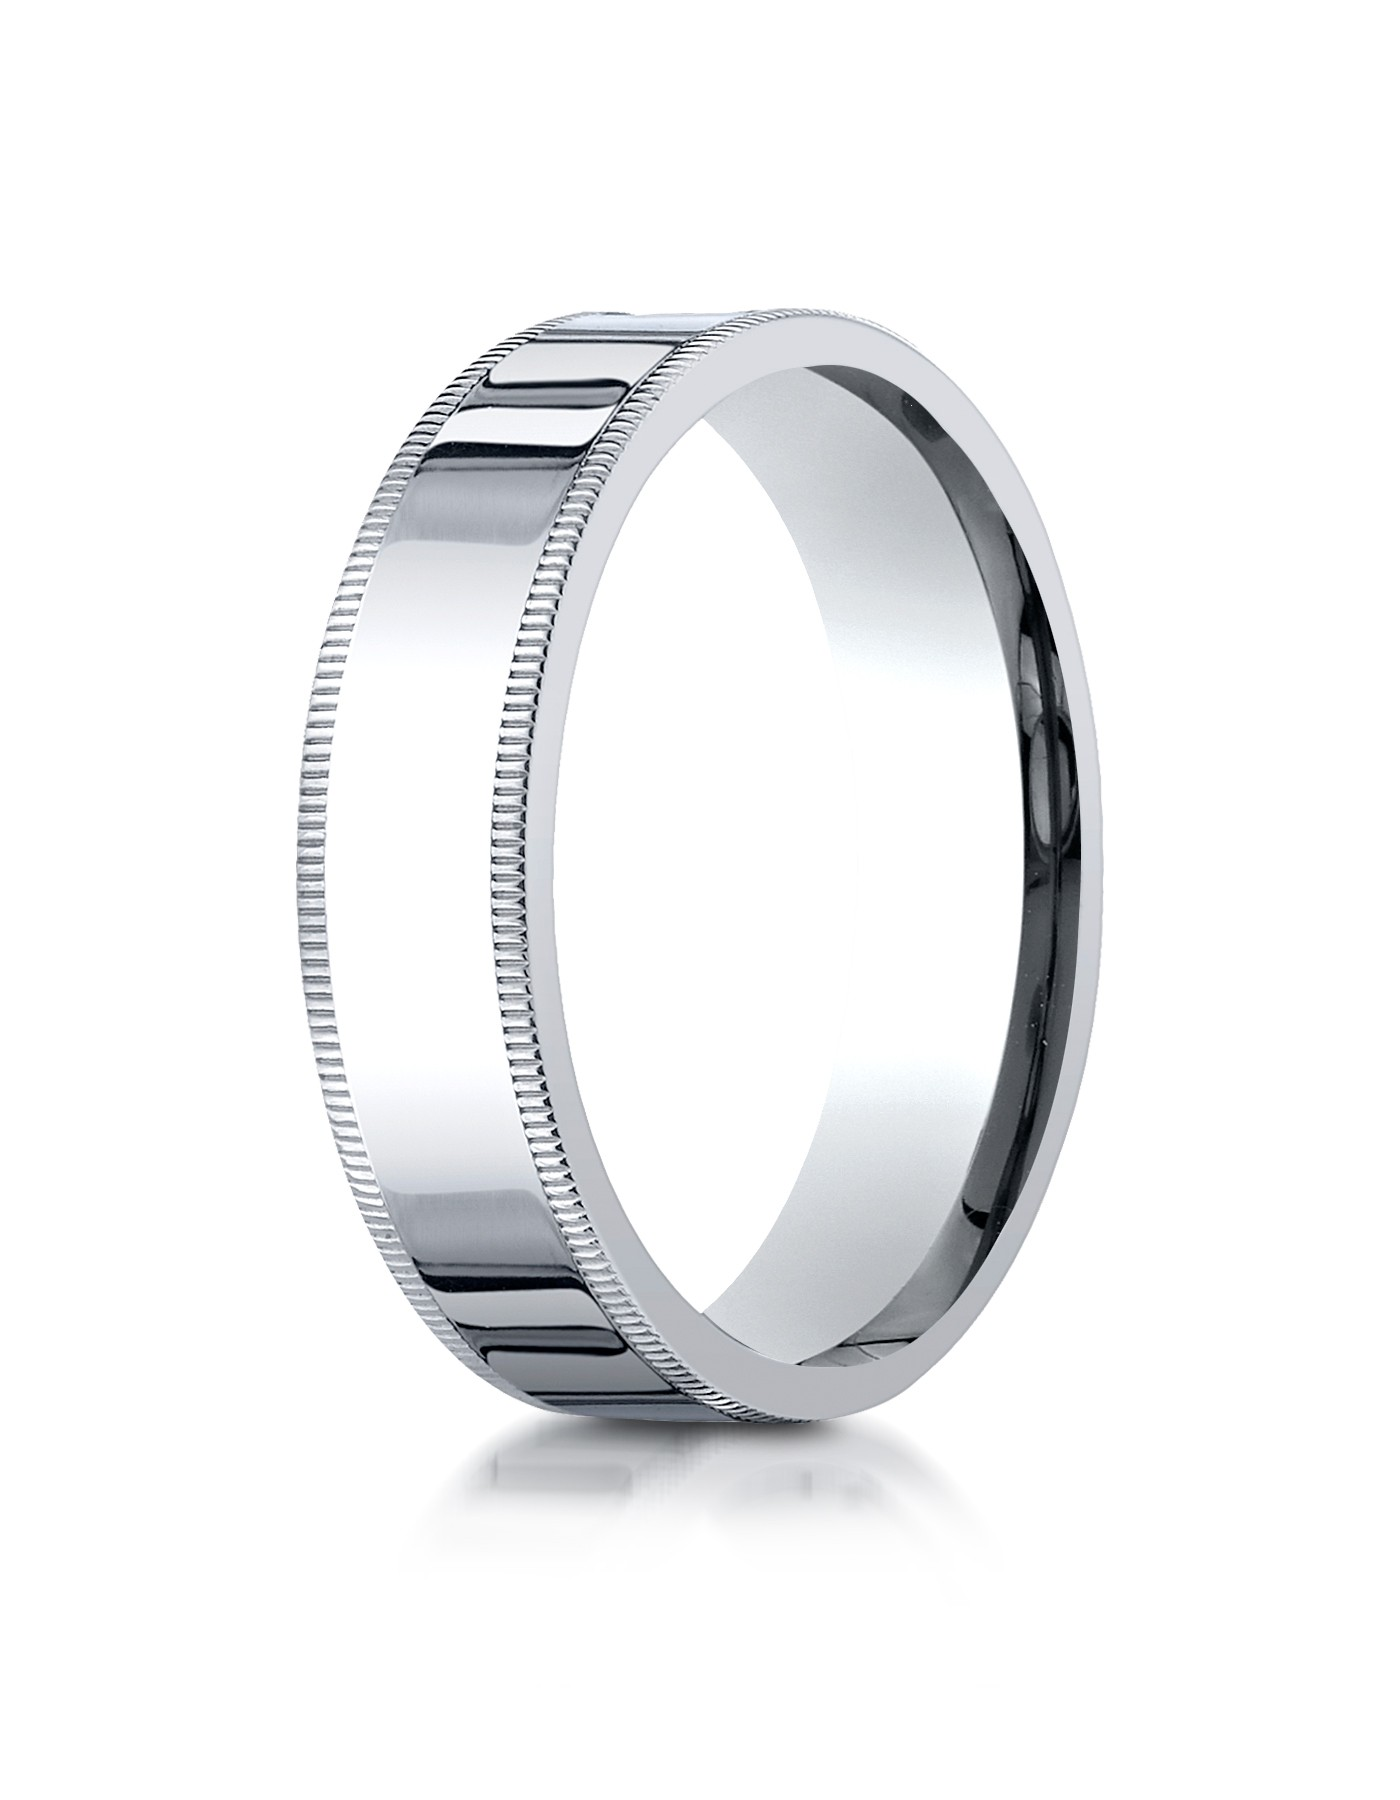 14k White Gold 6mm Flat Comfort-fit Ring With Milgrain